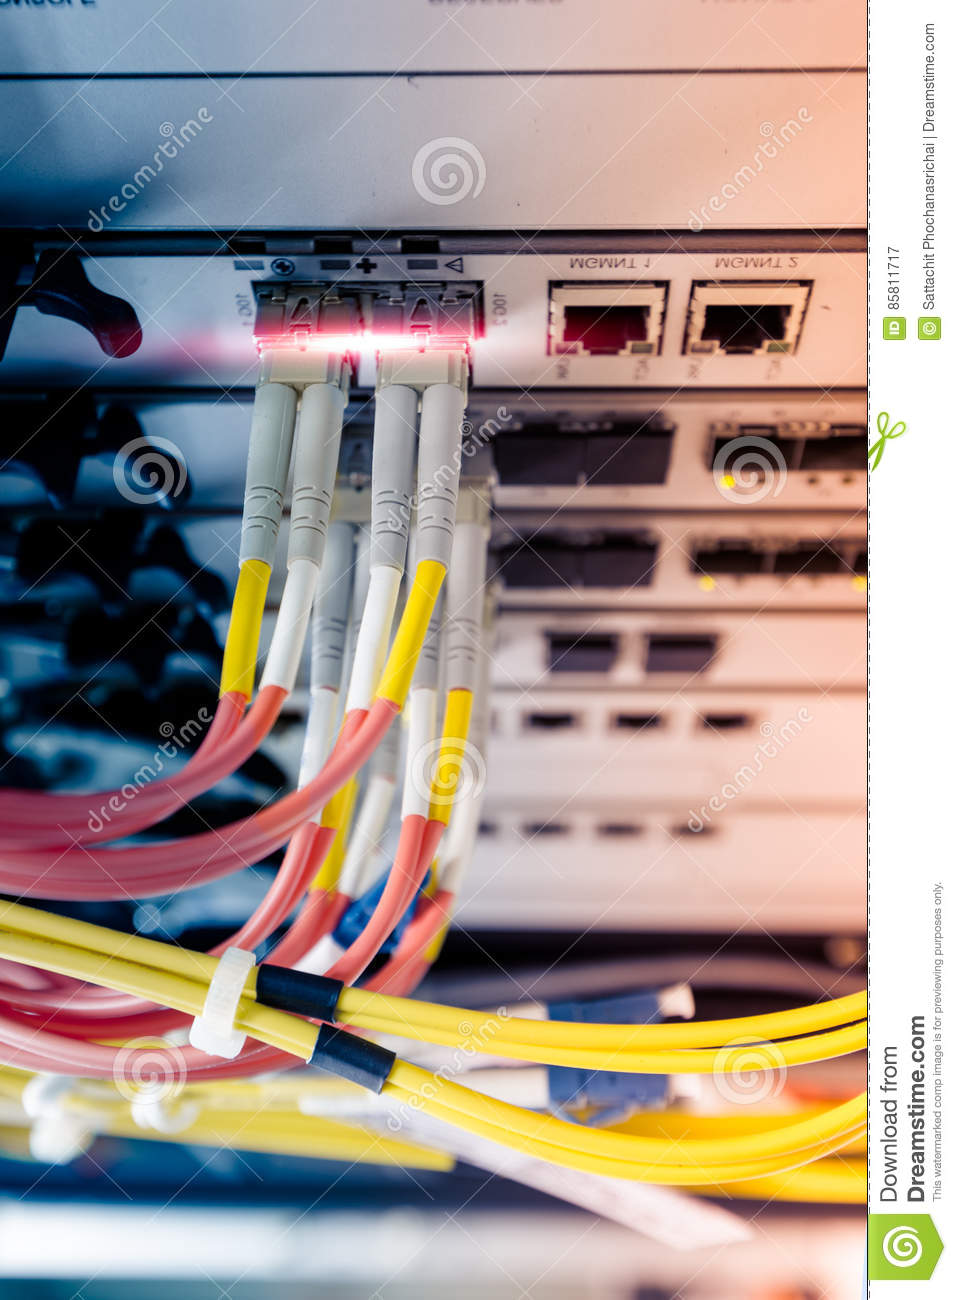 Wiring Ethernet Rack Diagram Schematics Network Cable Schematic Fiber Optic Connect To Switch Stock Image Of Rj45